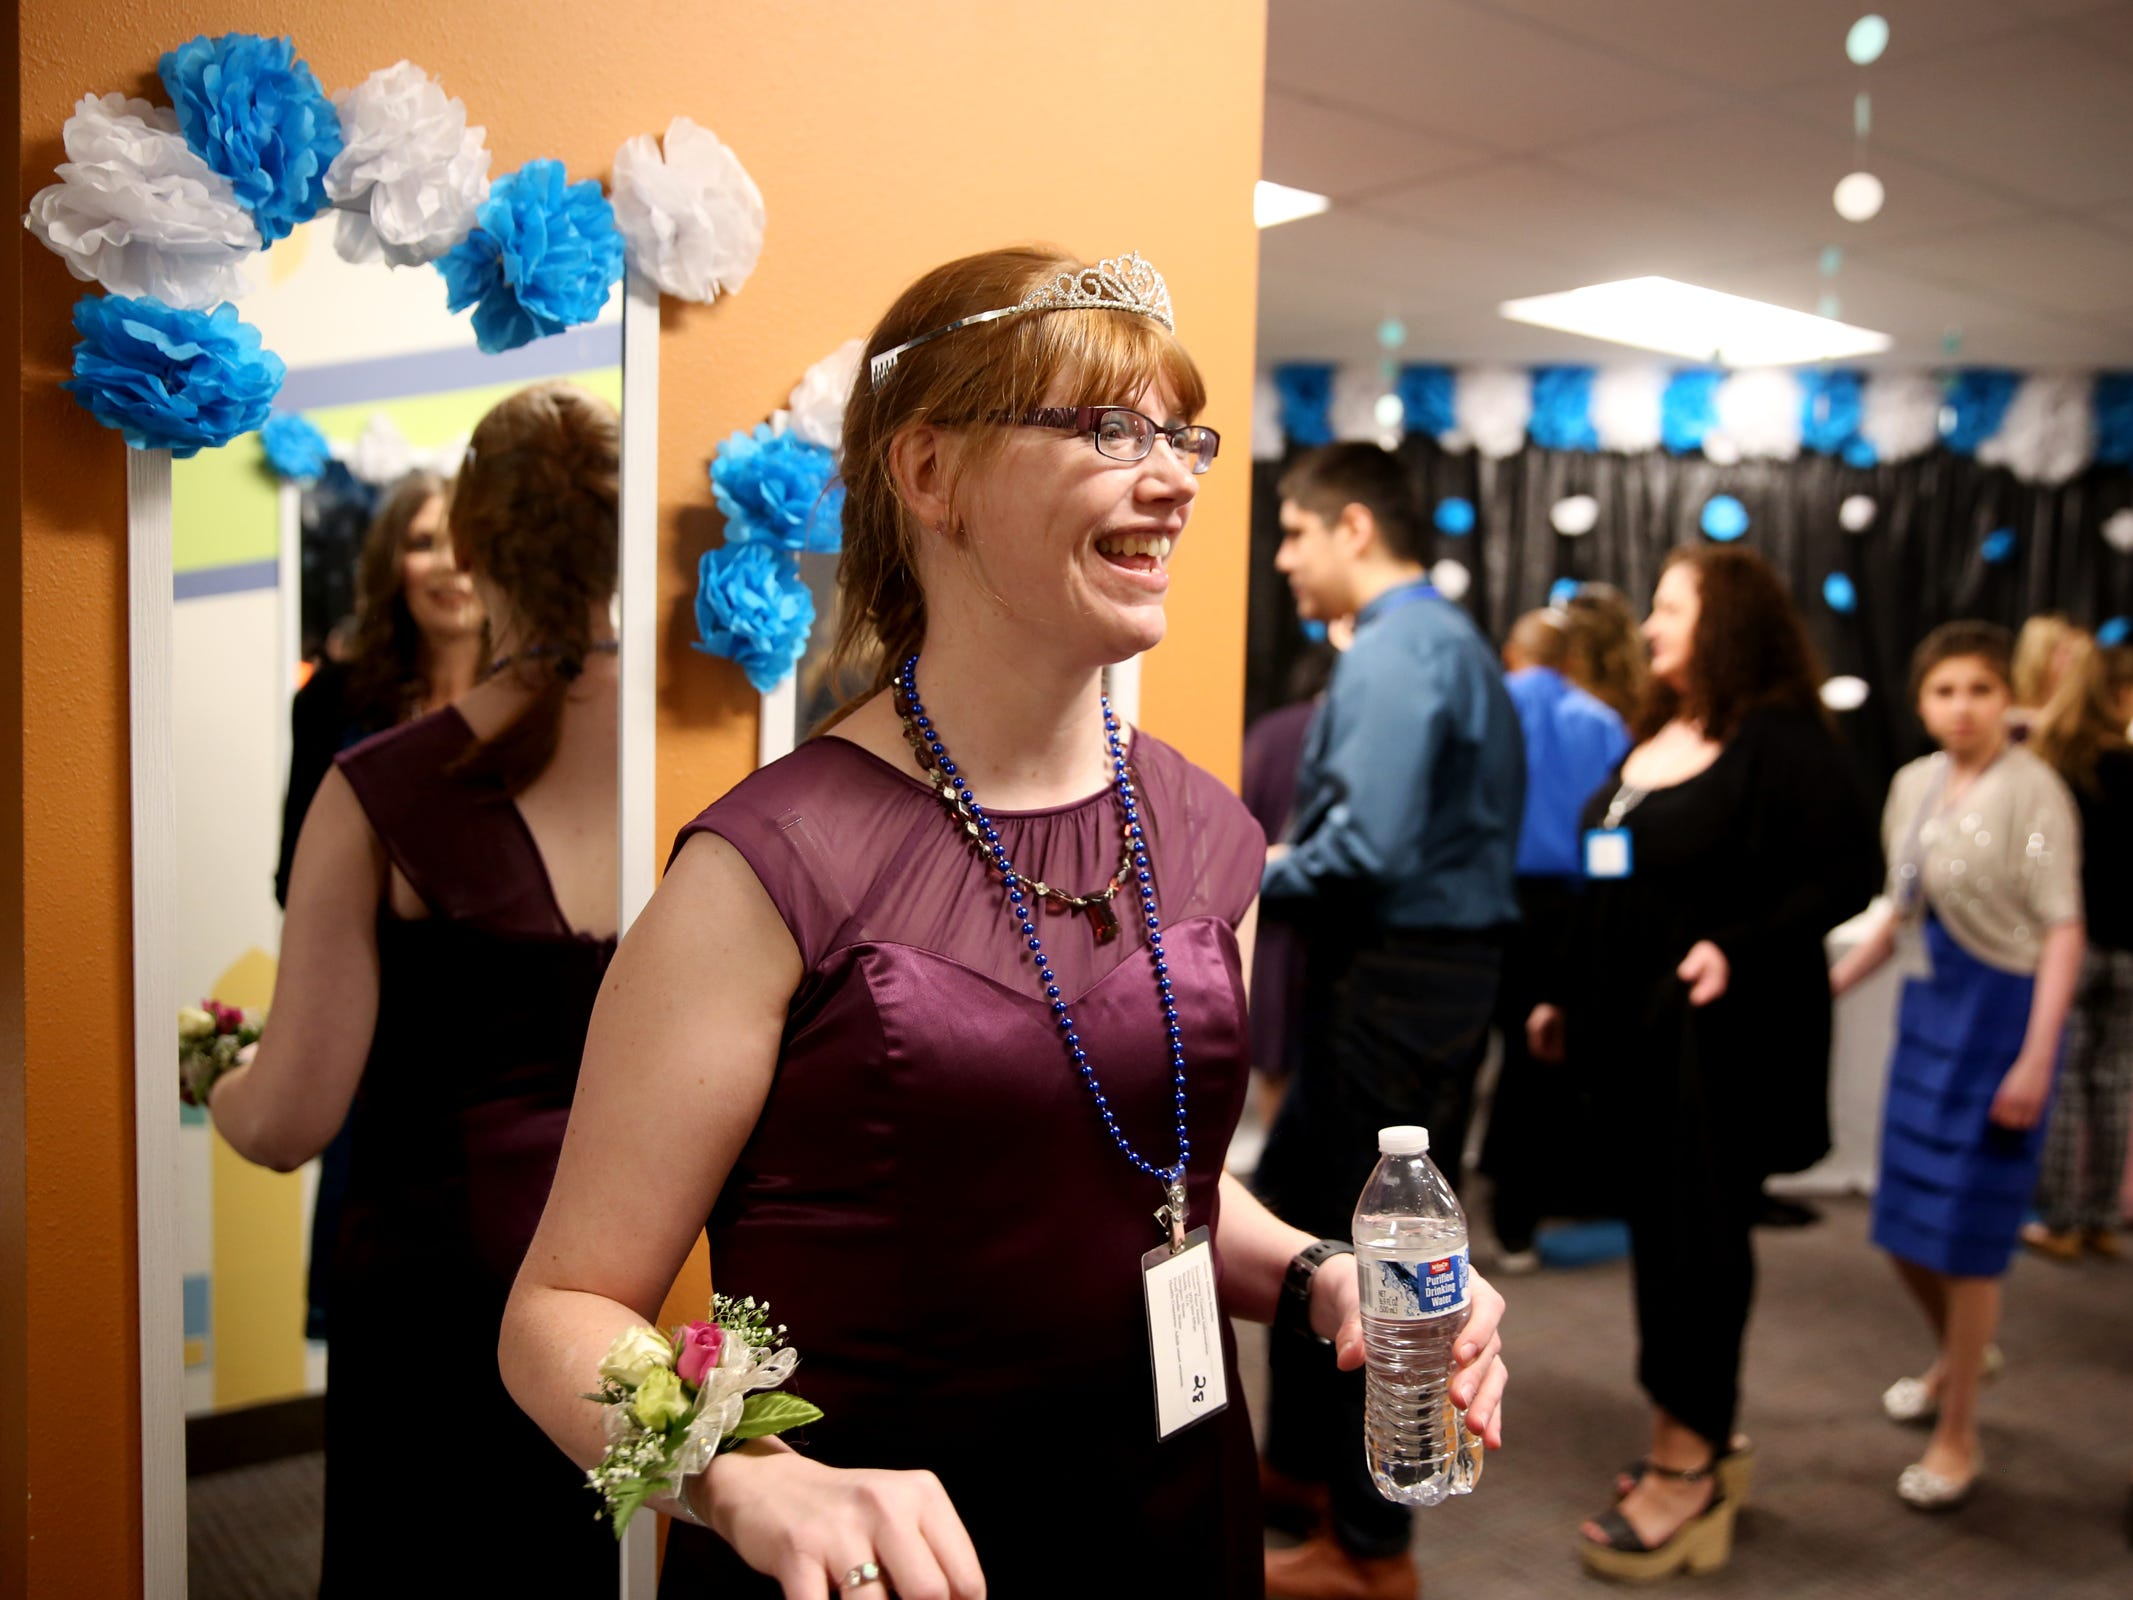 Kris Burden, 36, of Salem, arrives at Night to Shine, a prom night experience for people with special needs, at Salem Alliance Church on Friday, Feb. 8, 2019.